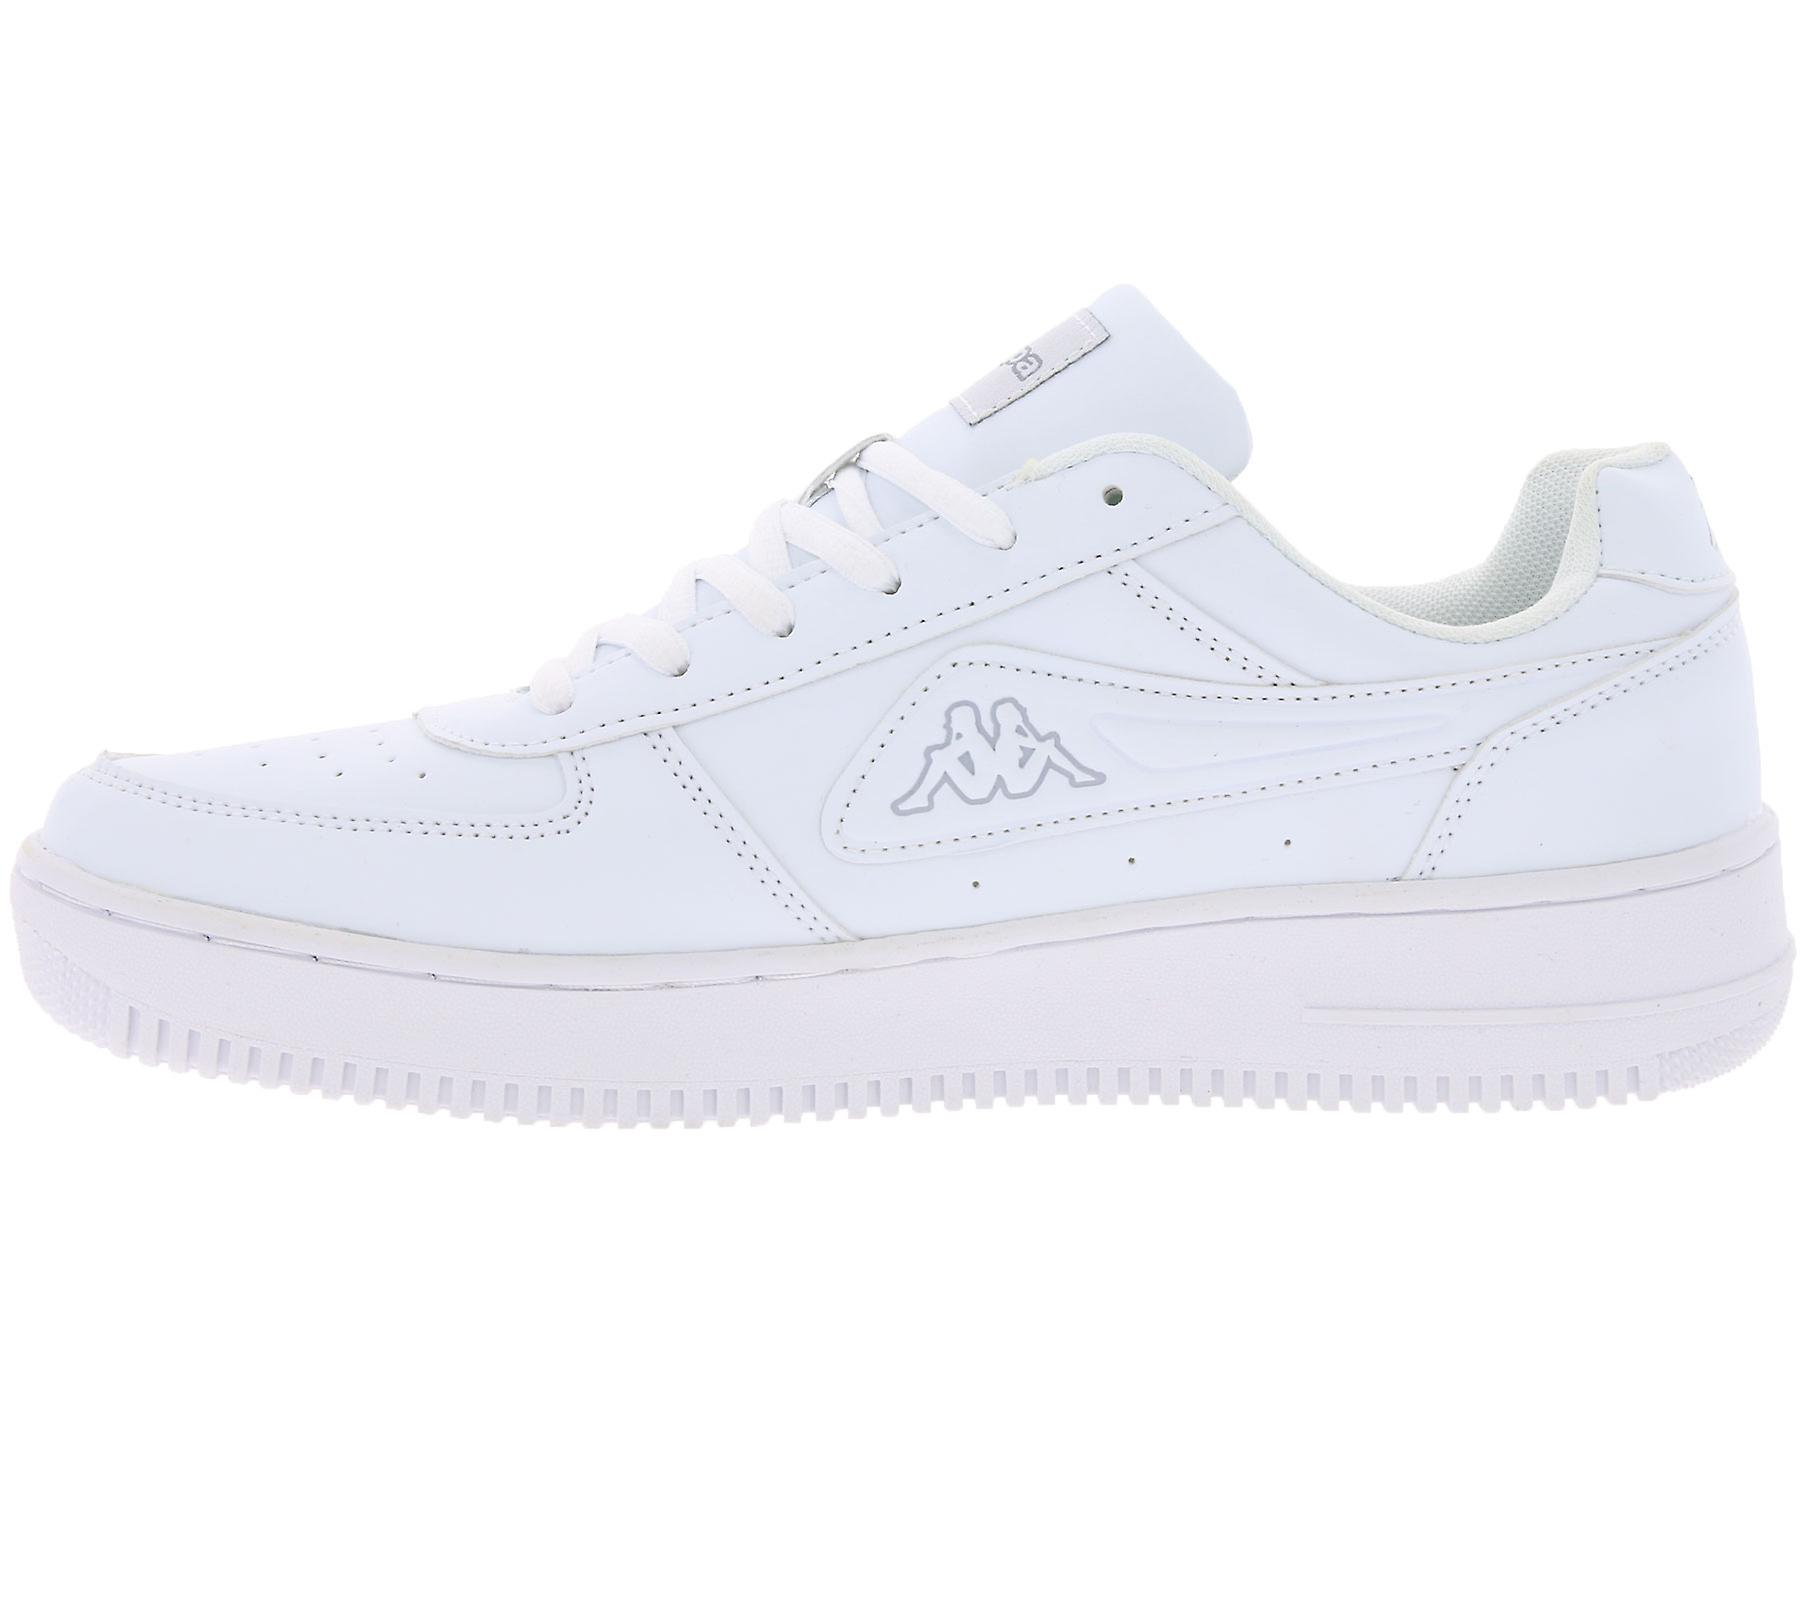 white sneakers sneaker men's Kappa bash WFPIFq